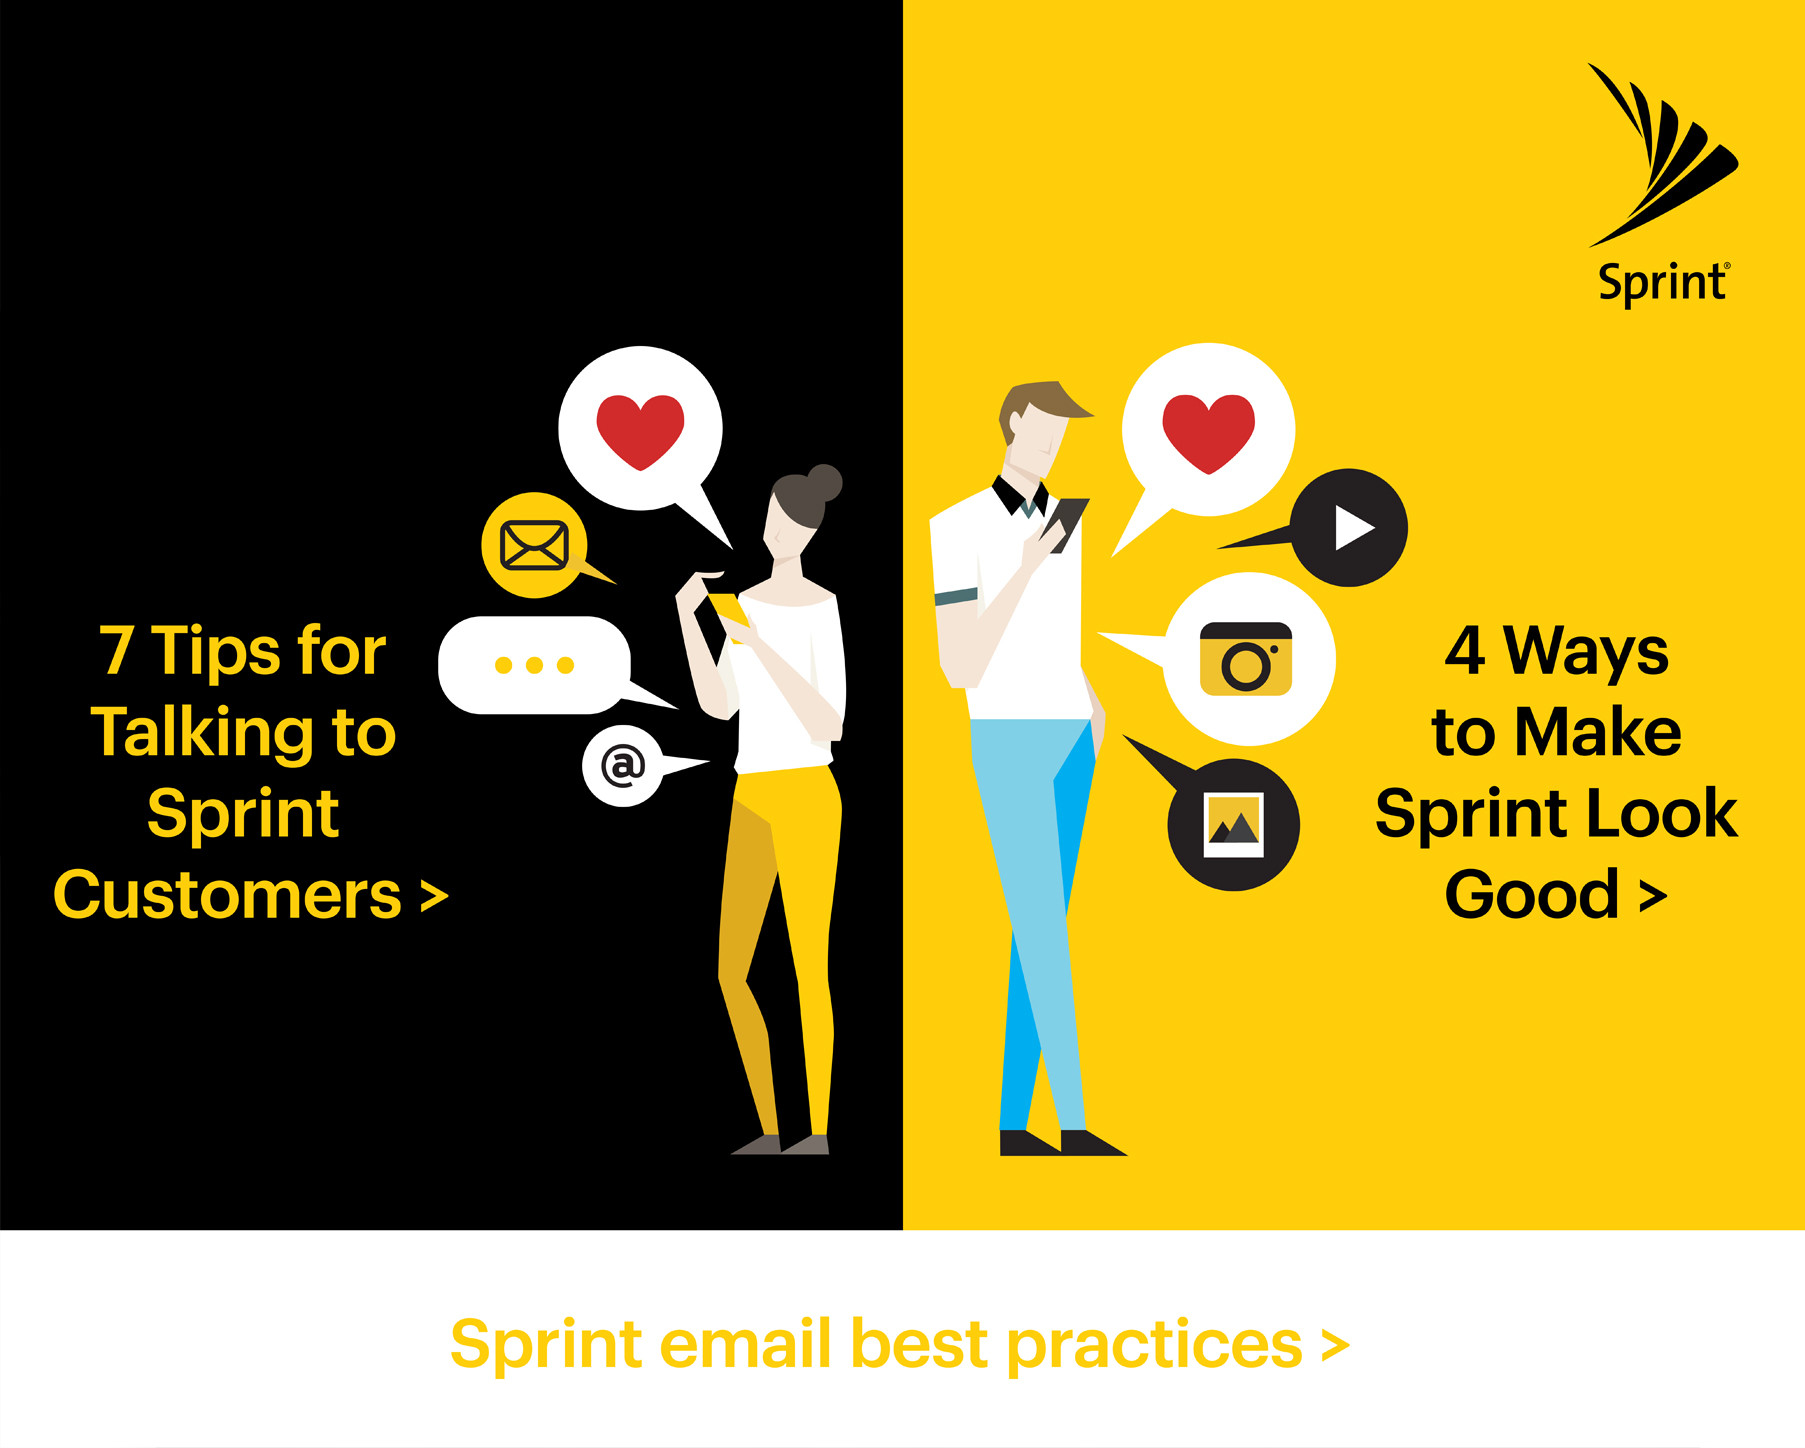 Sprint Email Best Practices